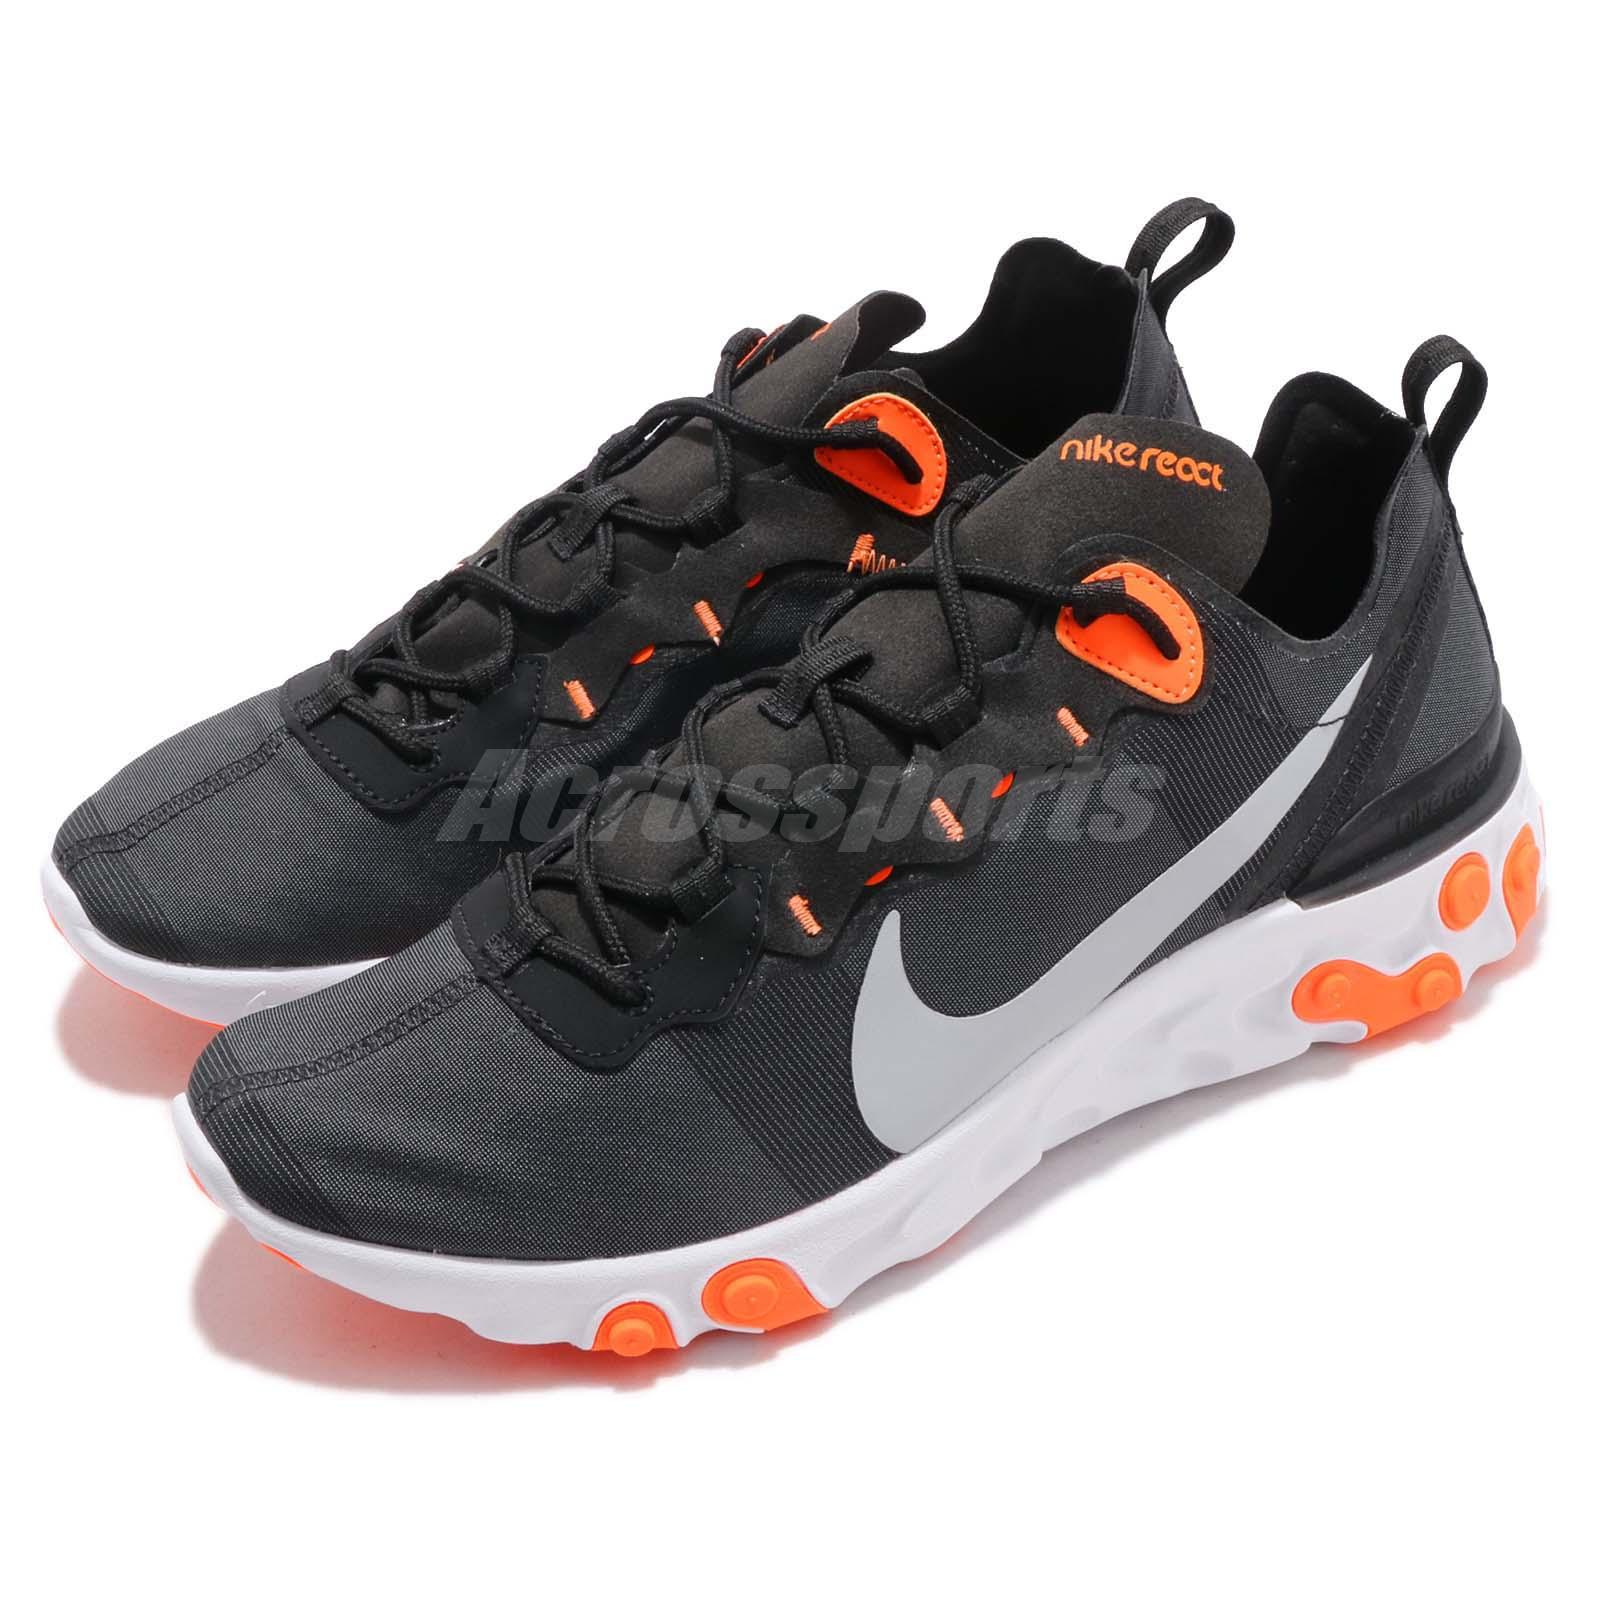 Details about Nike React Element 55 Black Grey Orange Men Running Shoes  Sneakers BQ6166-006 9716544dc